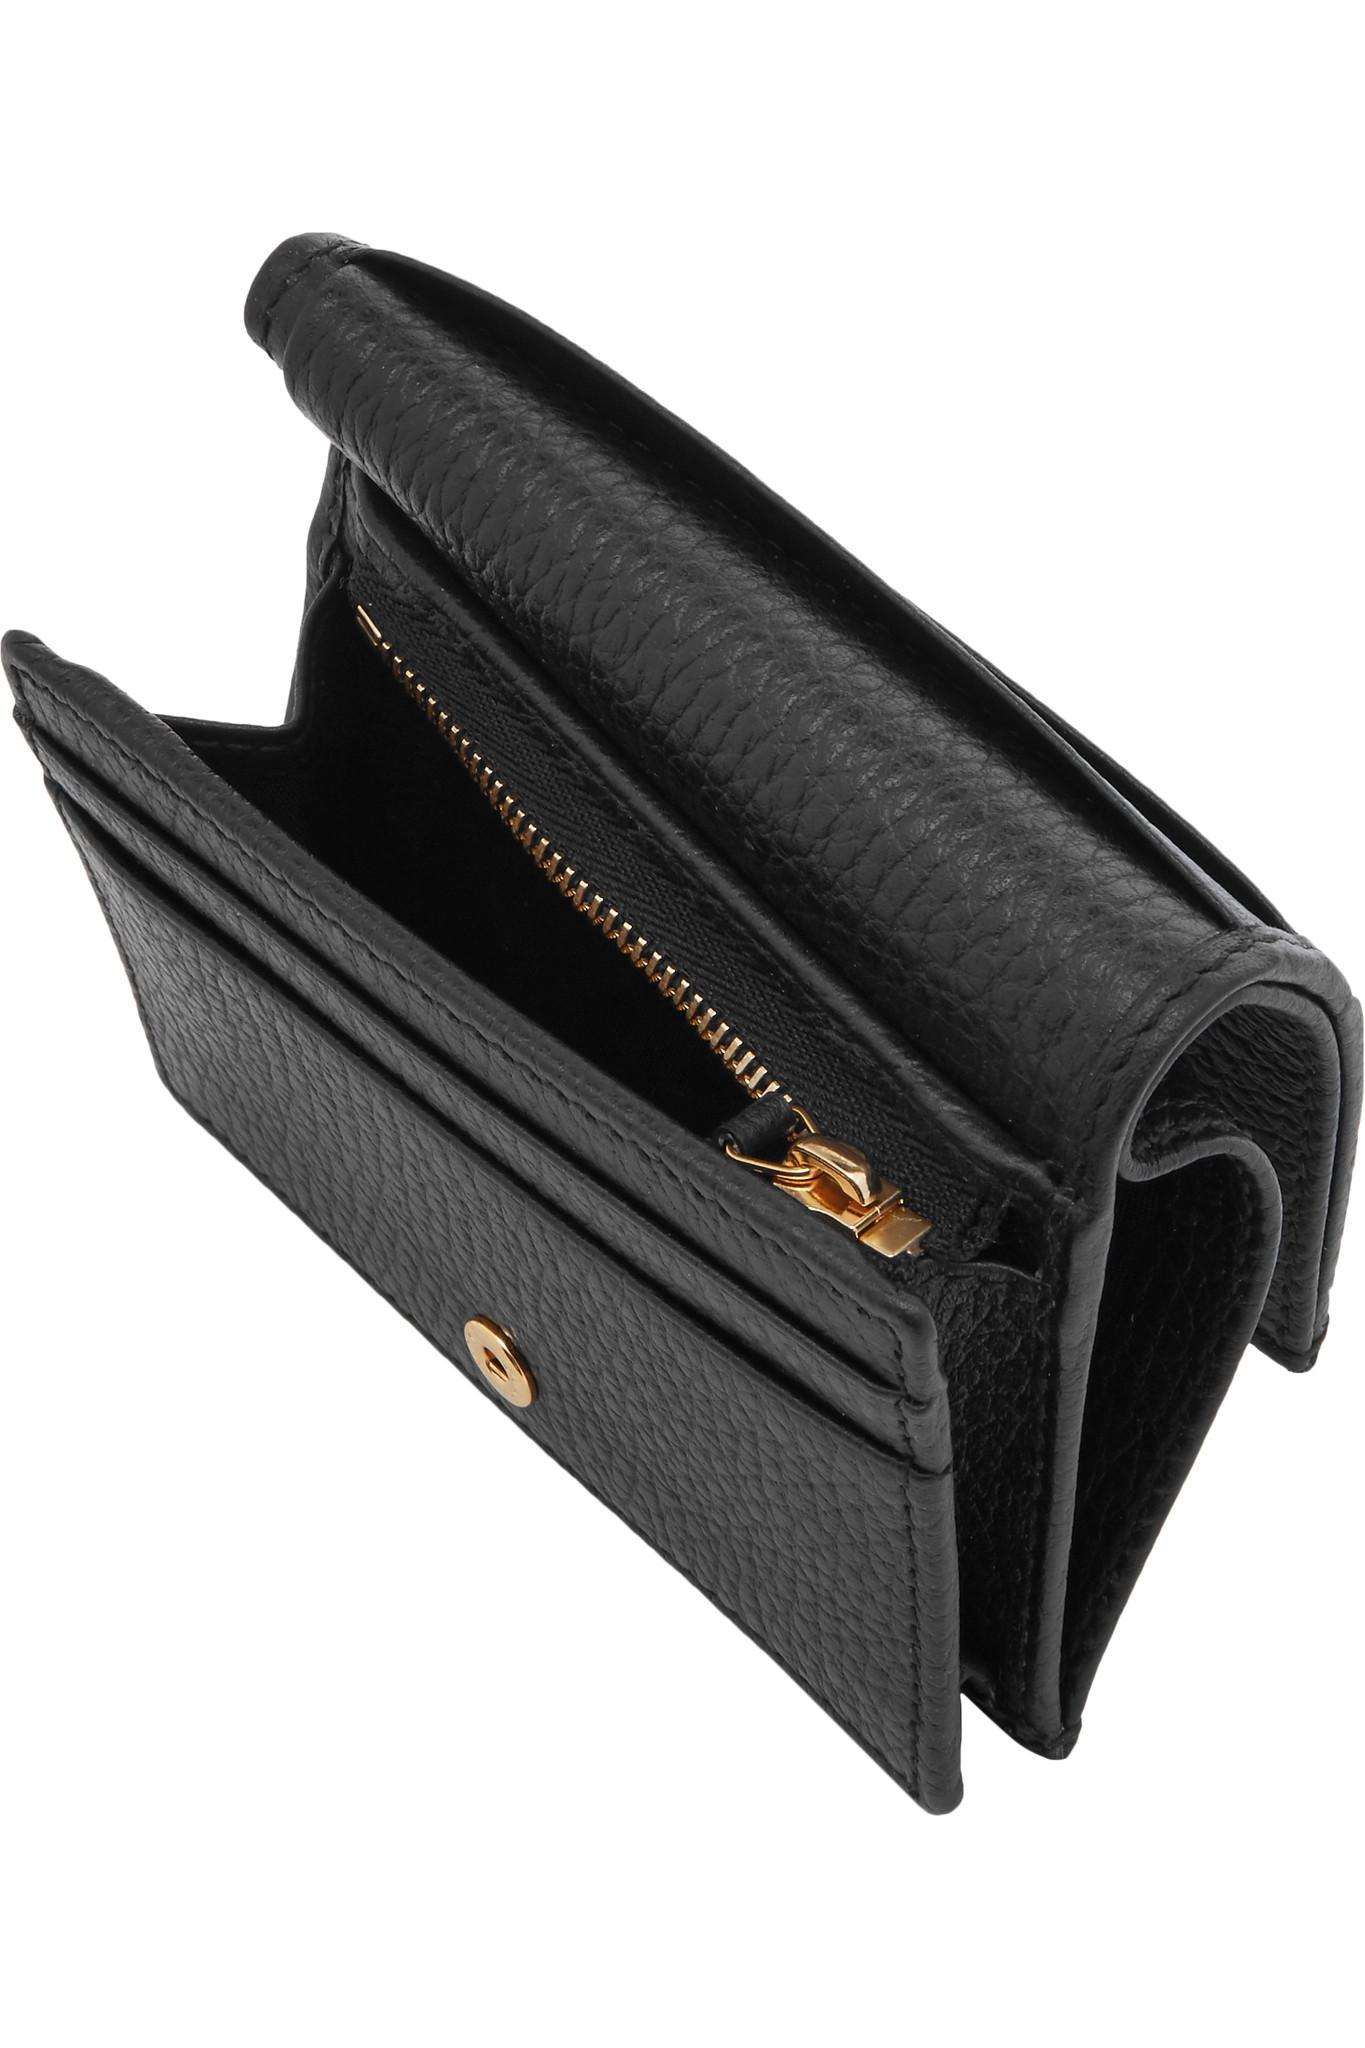 9b5897025541 Gucci Marmont Petite Textured-leather Wallet in Black - Lyst